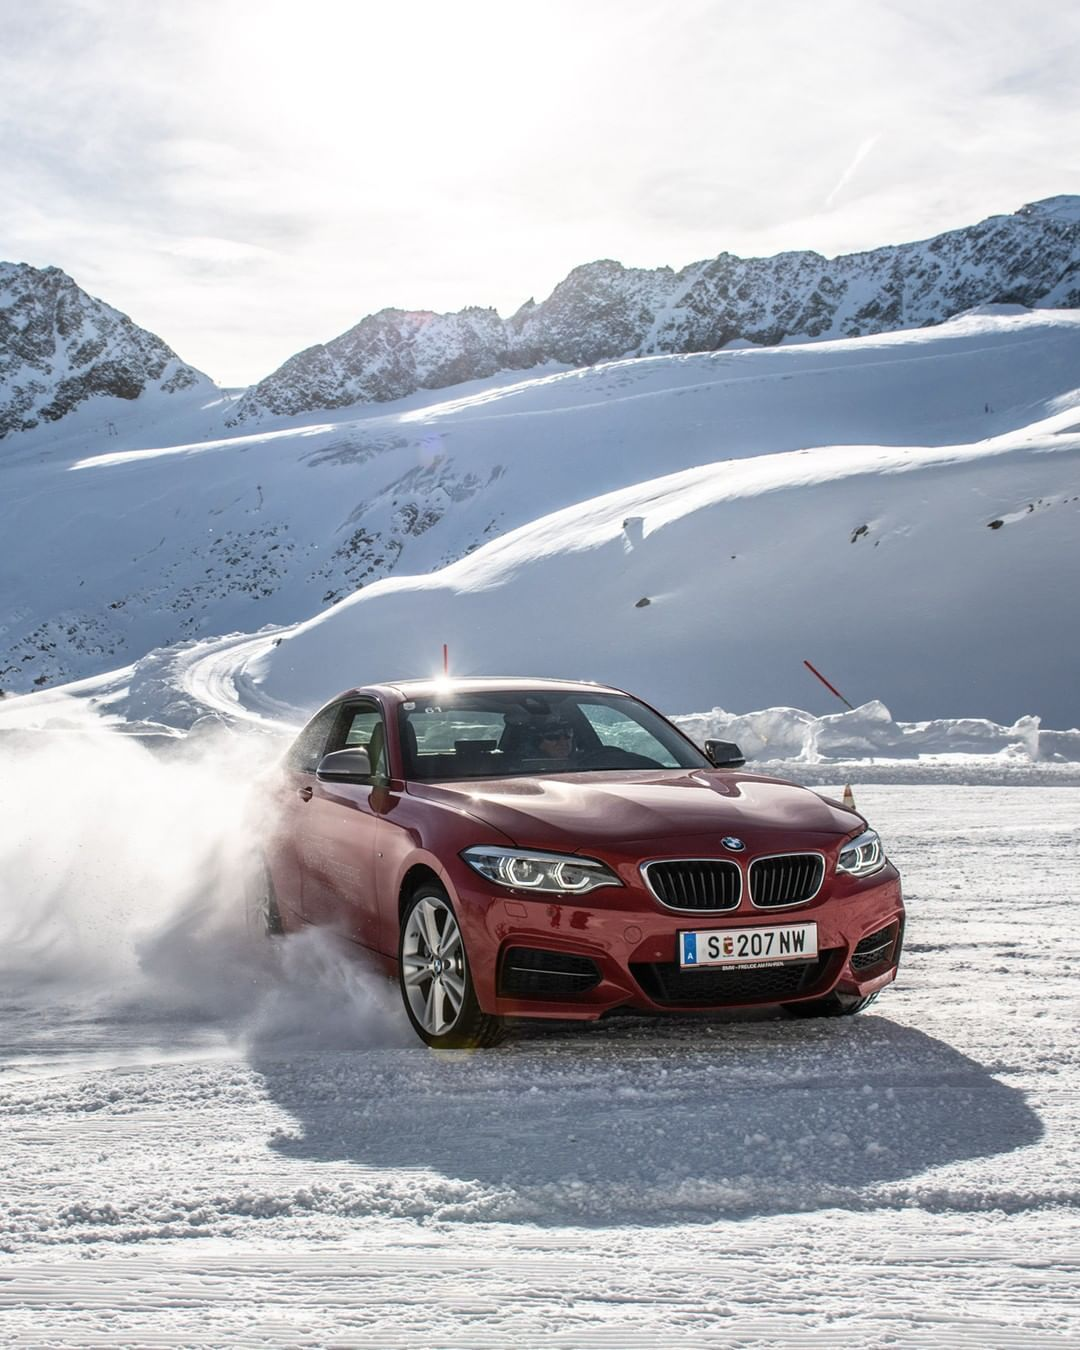 Drifting In Pleasure The Bmw M240i Coupe Bmwrepost Michaelwerlberger Bmw M240i Soelden Bmwdrivingexperience Bmw M240i Coupe Bmw Coupe Fahrzeuge